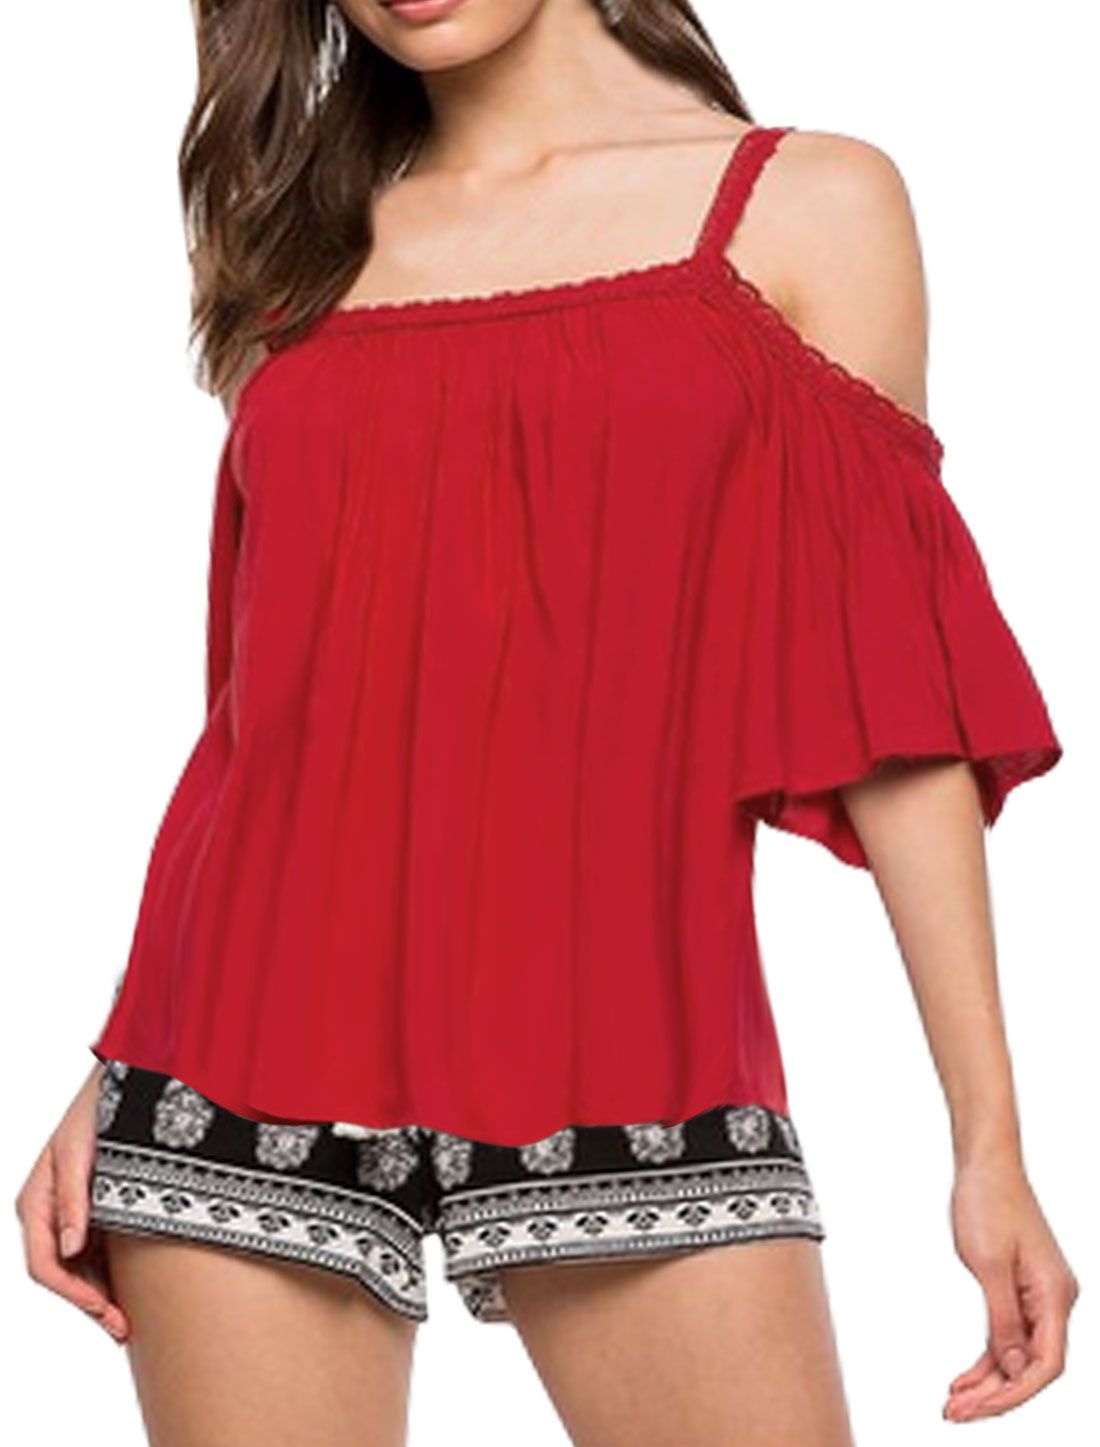 Women Spaghetti Straps Cut Out Shoulder 3/4 Sleeves Blouse Red S